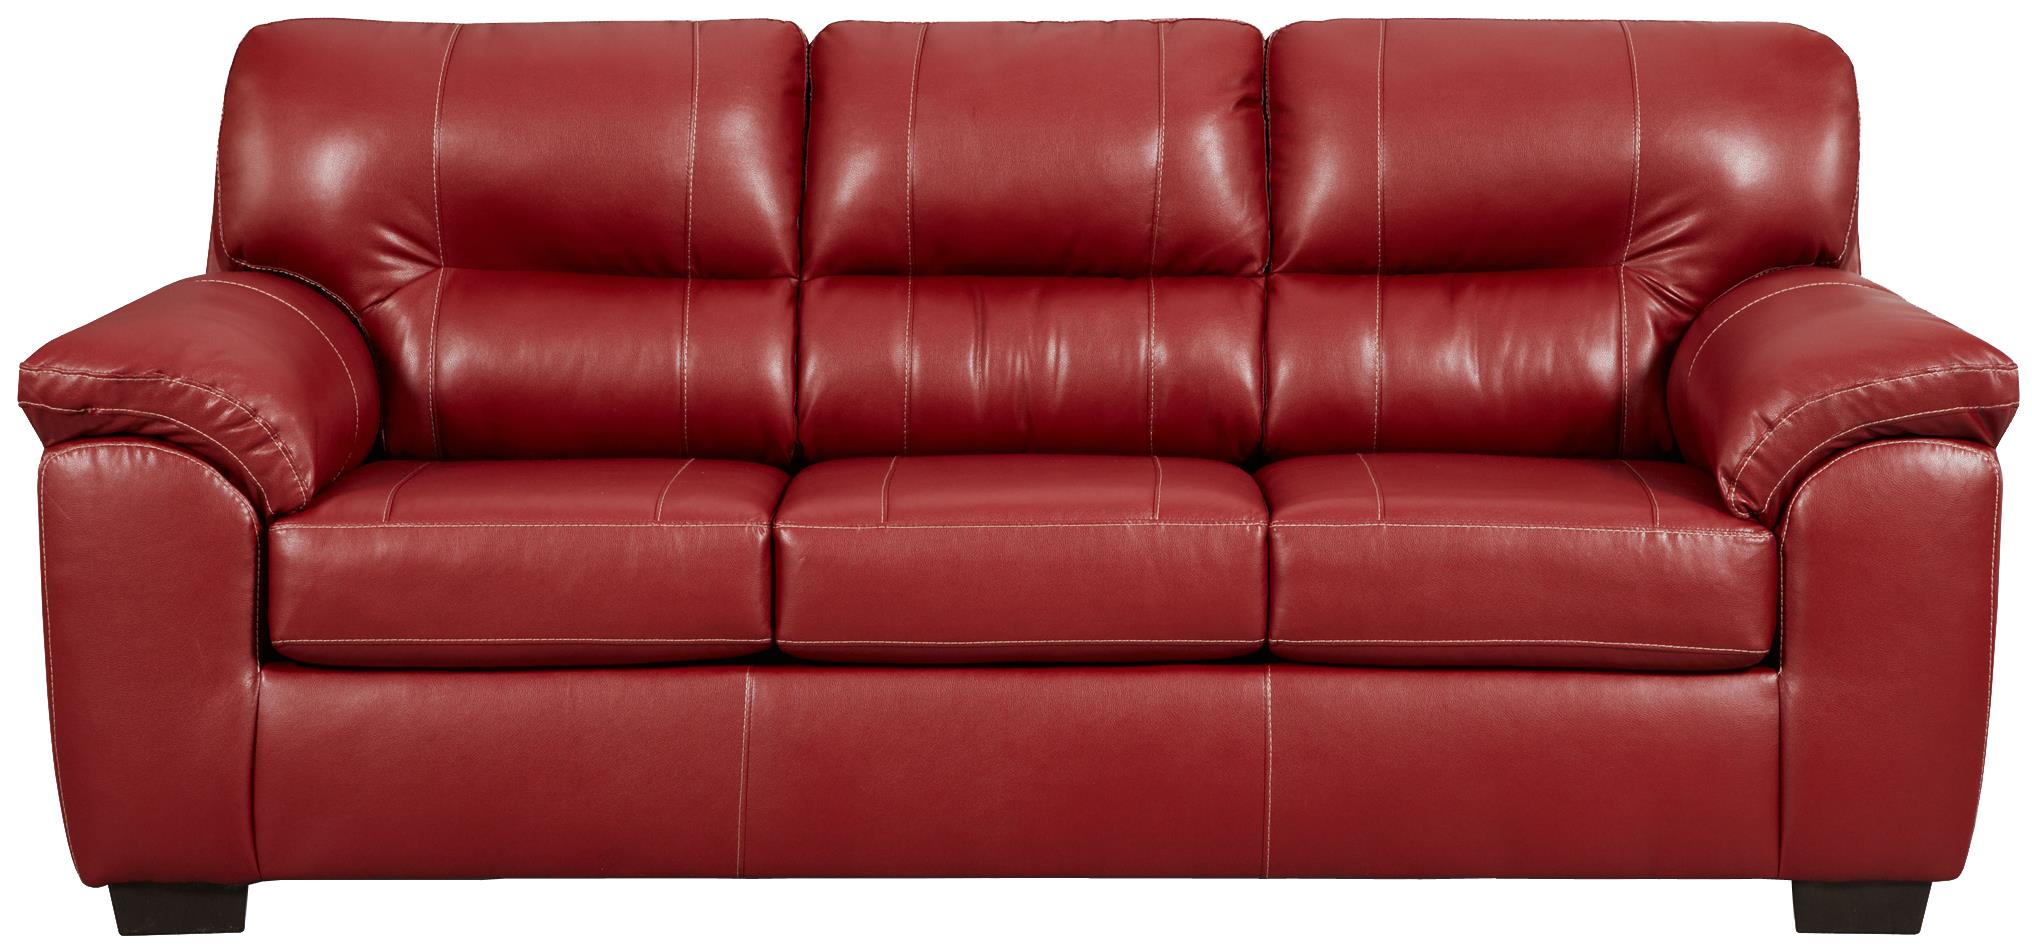 5600 Sofa by Affordable Furniture at Wilcox Furniture